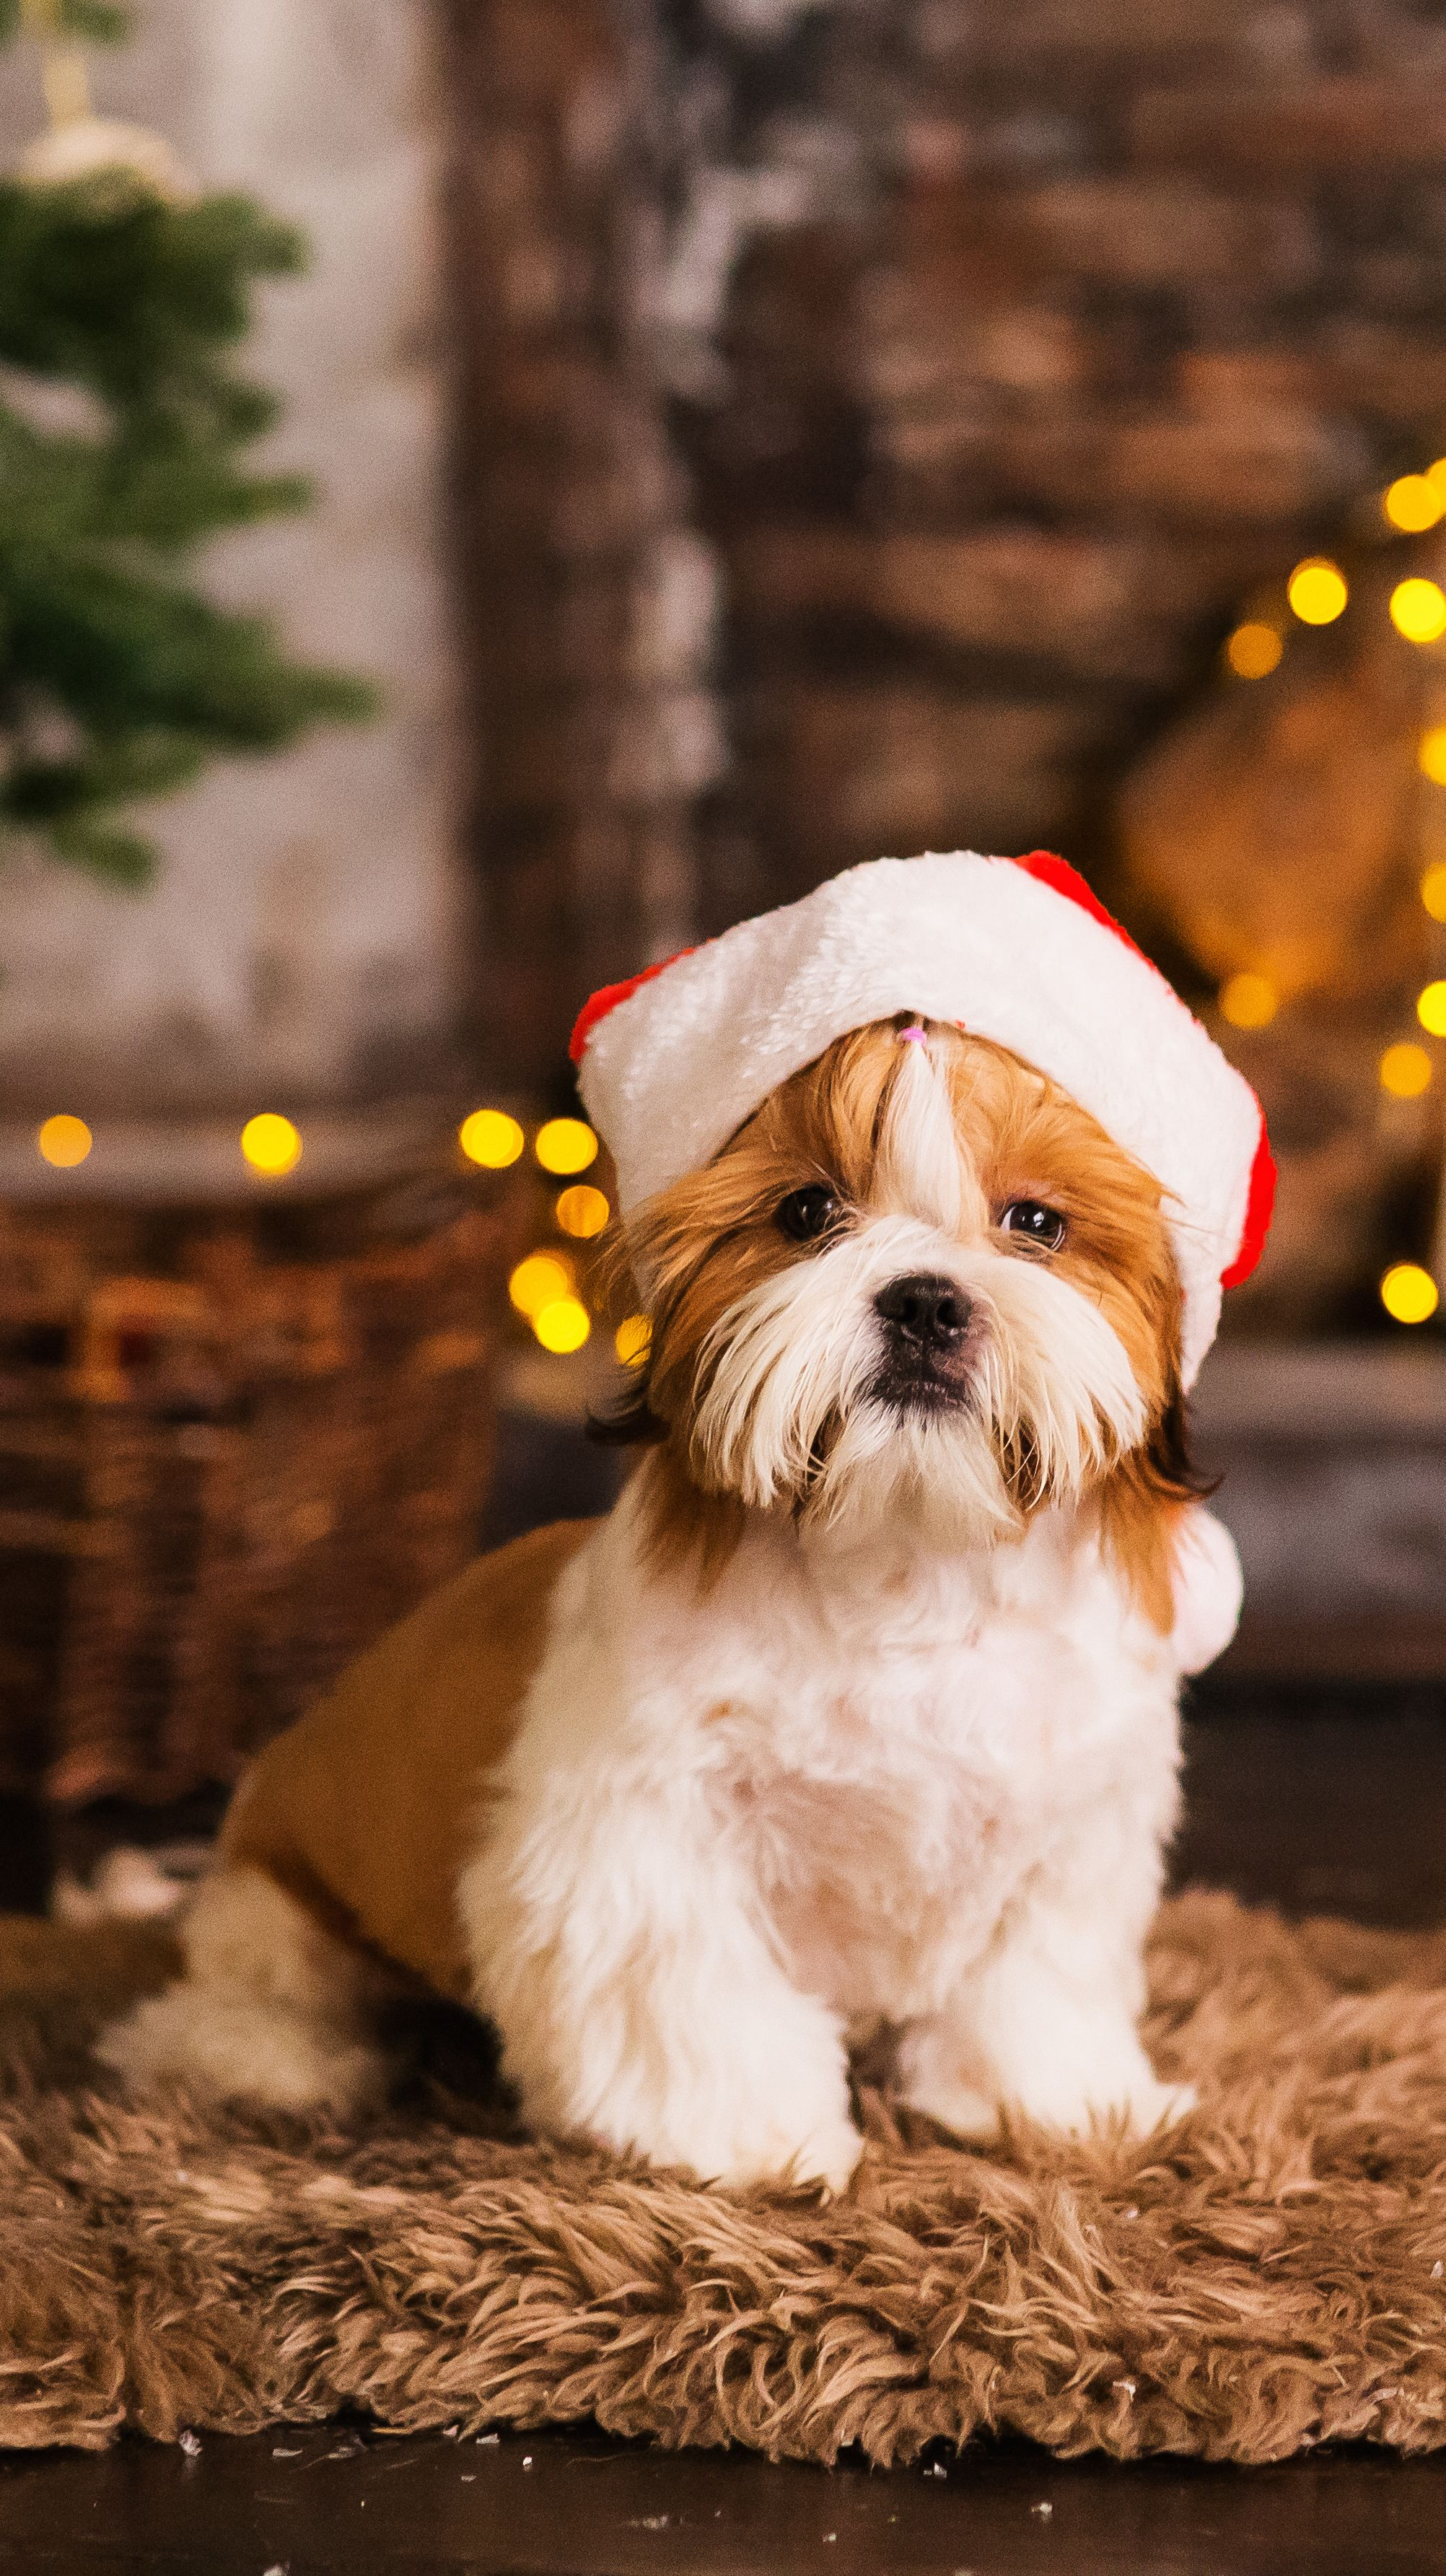 Male shih tzu 8 months old needs a new home | Pontefract ...  |Shitzu Puppies New Years Eve